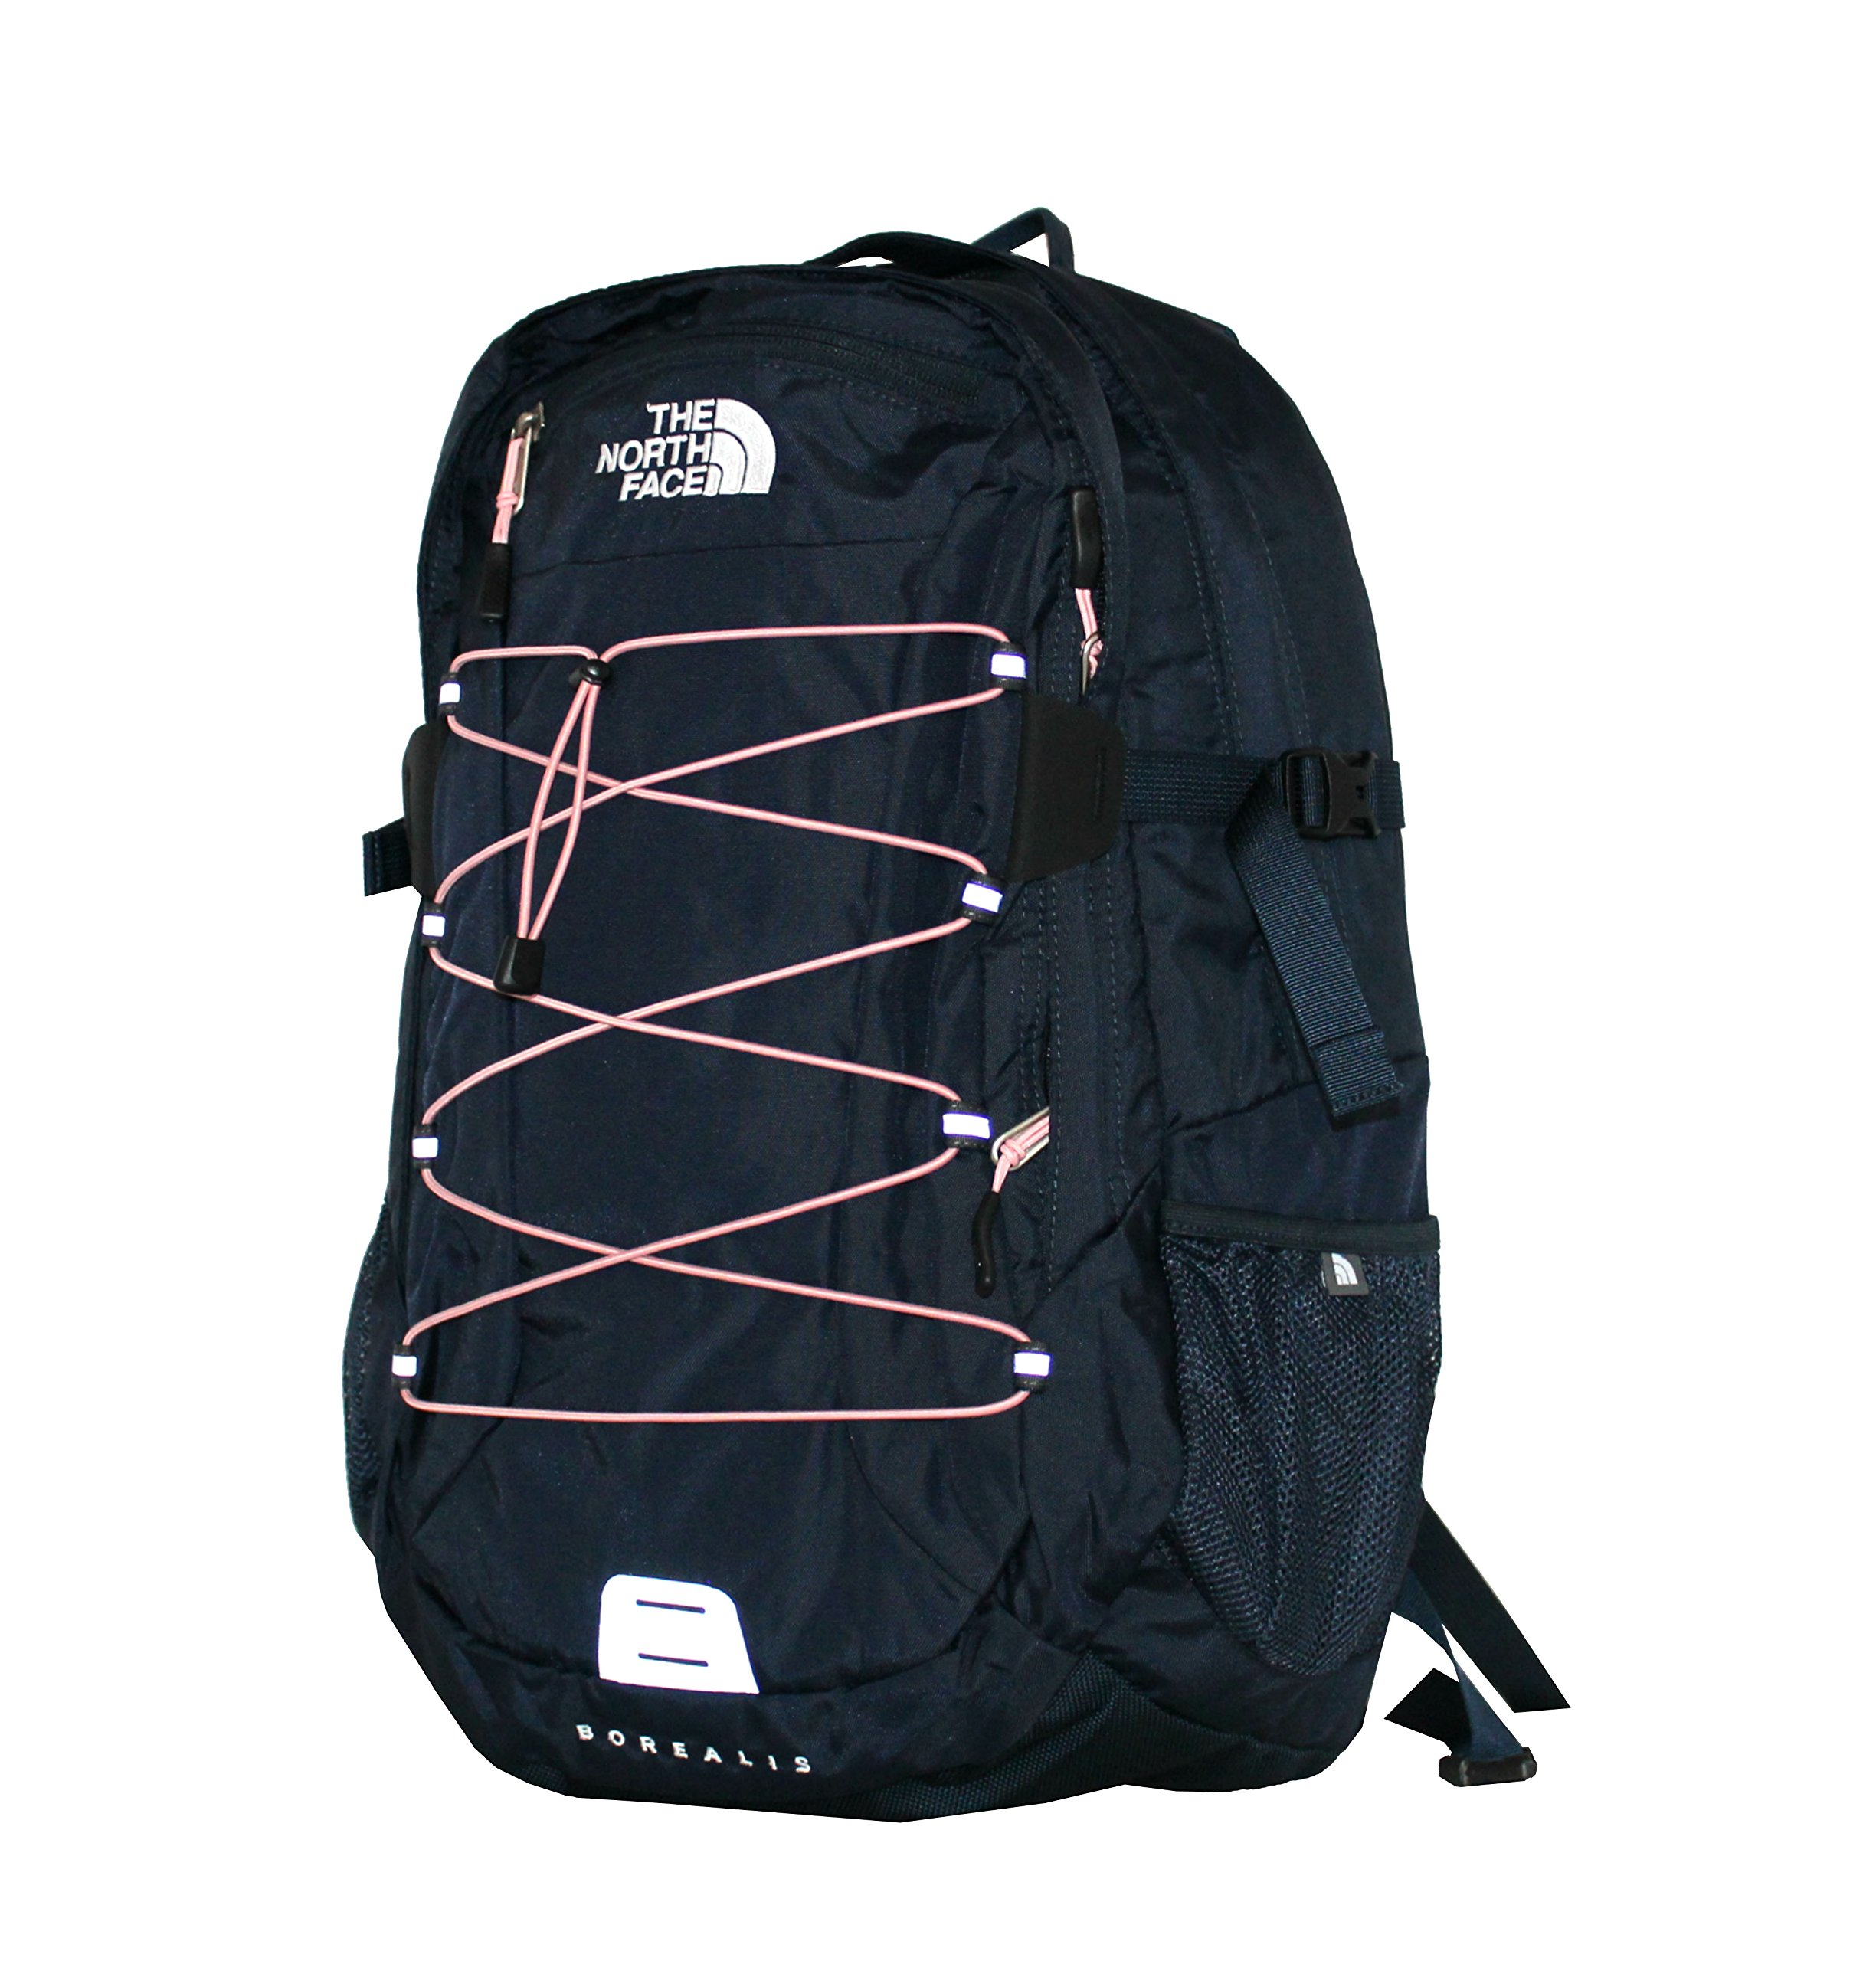 The North Face Women Classic Borealis Backpack Student School Bag (Urban navy pink)